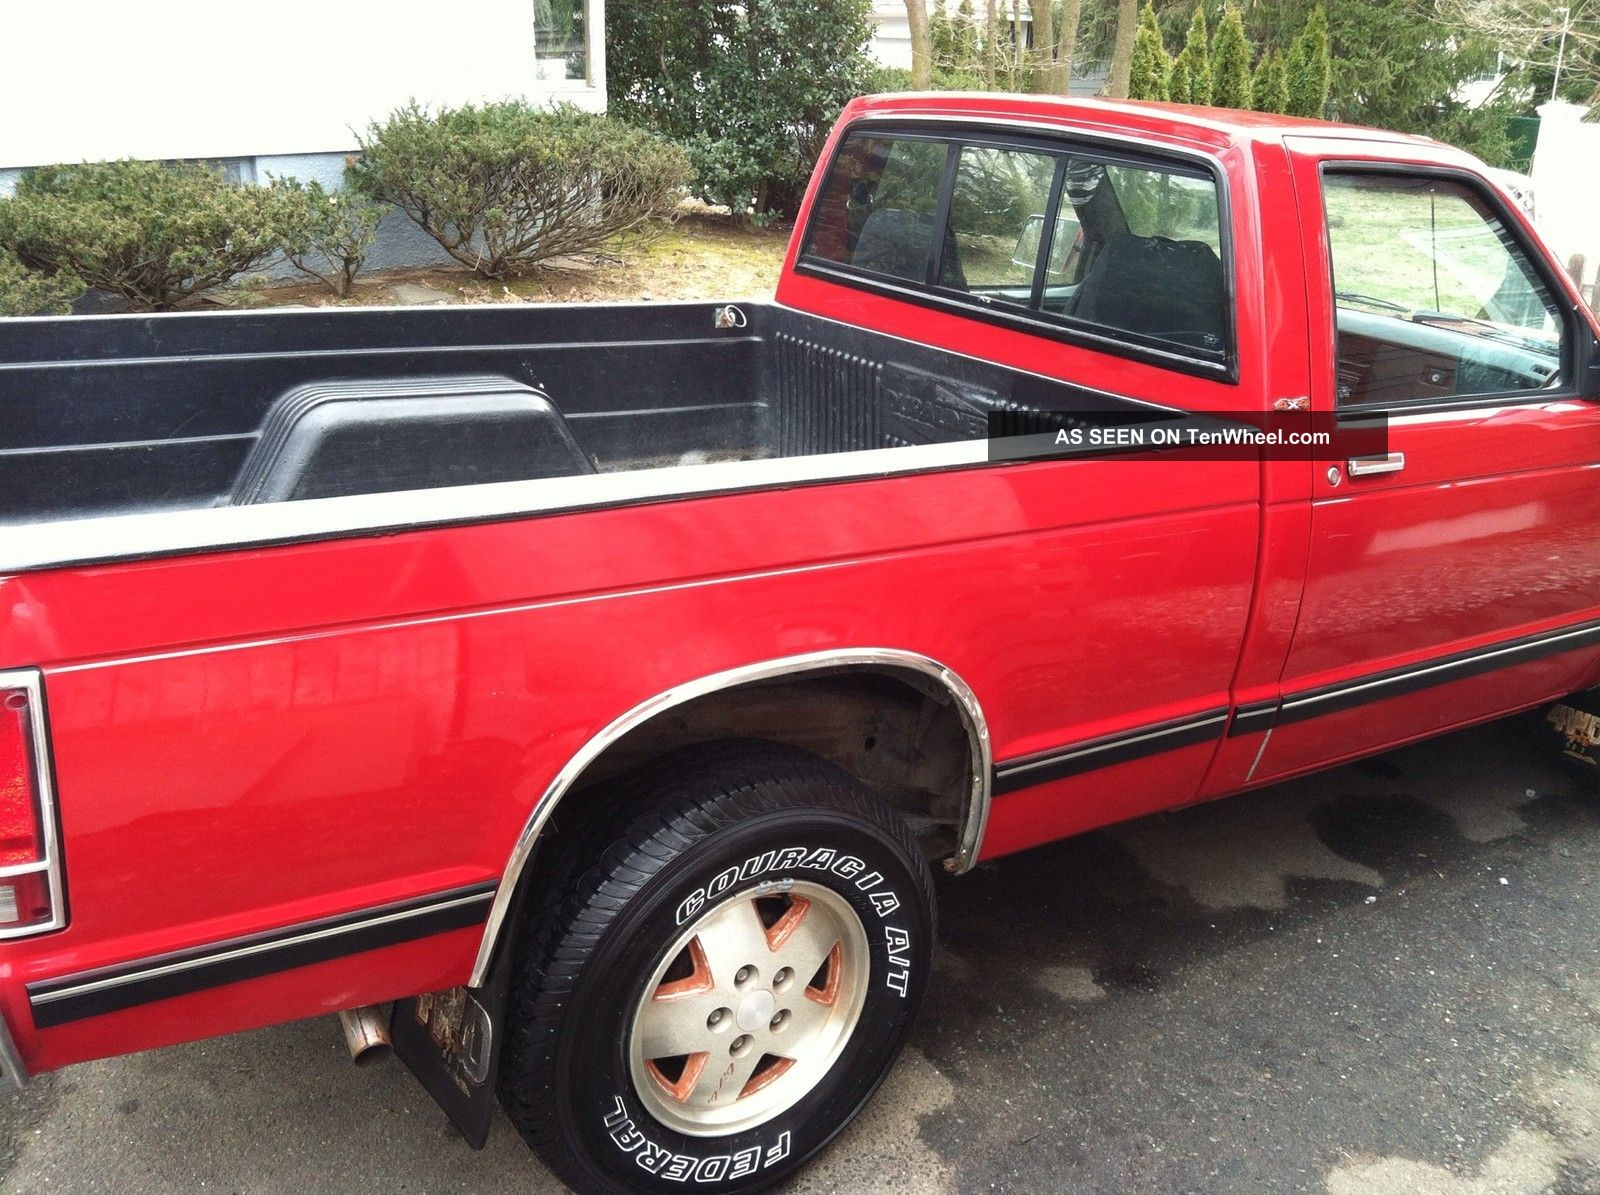 1986 Chevy S10 4x4 V6 5 Speed Barn Find Snow Plow S-10 photo